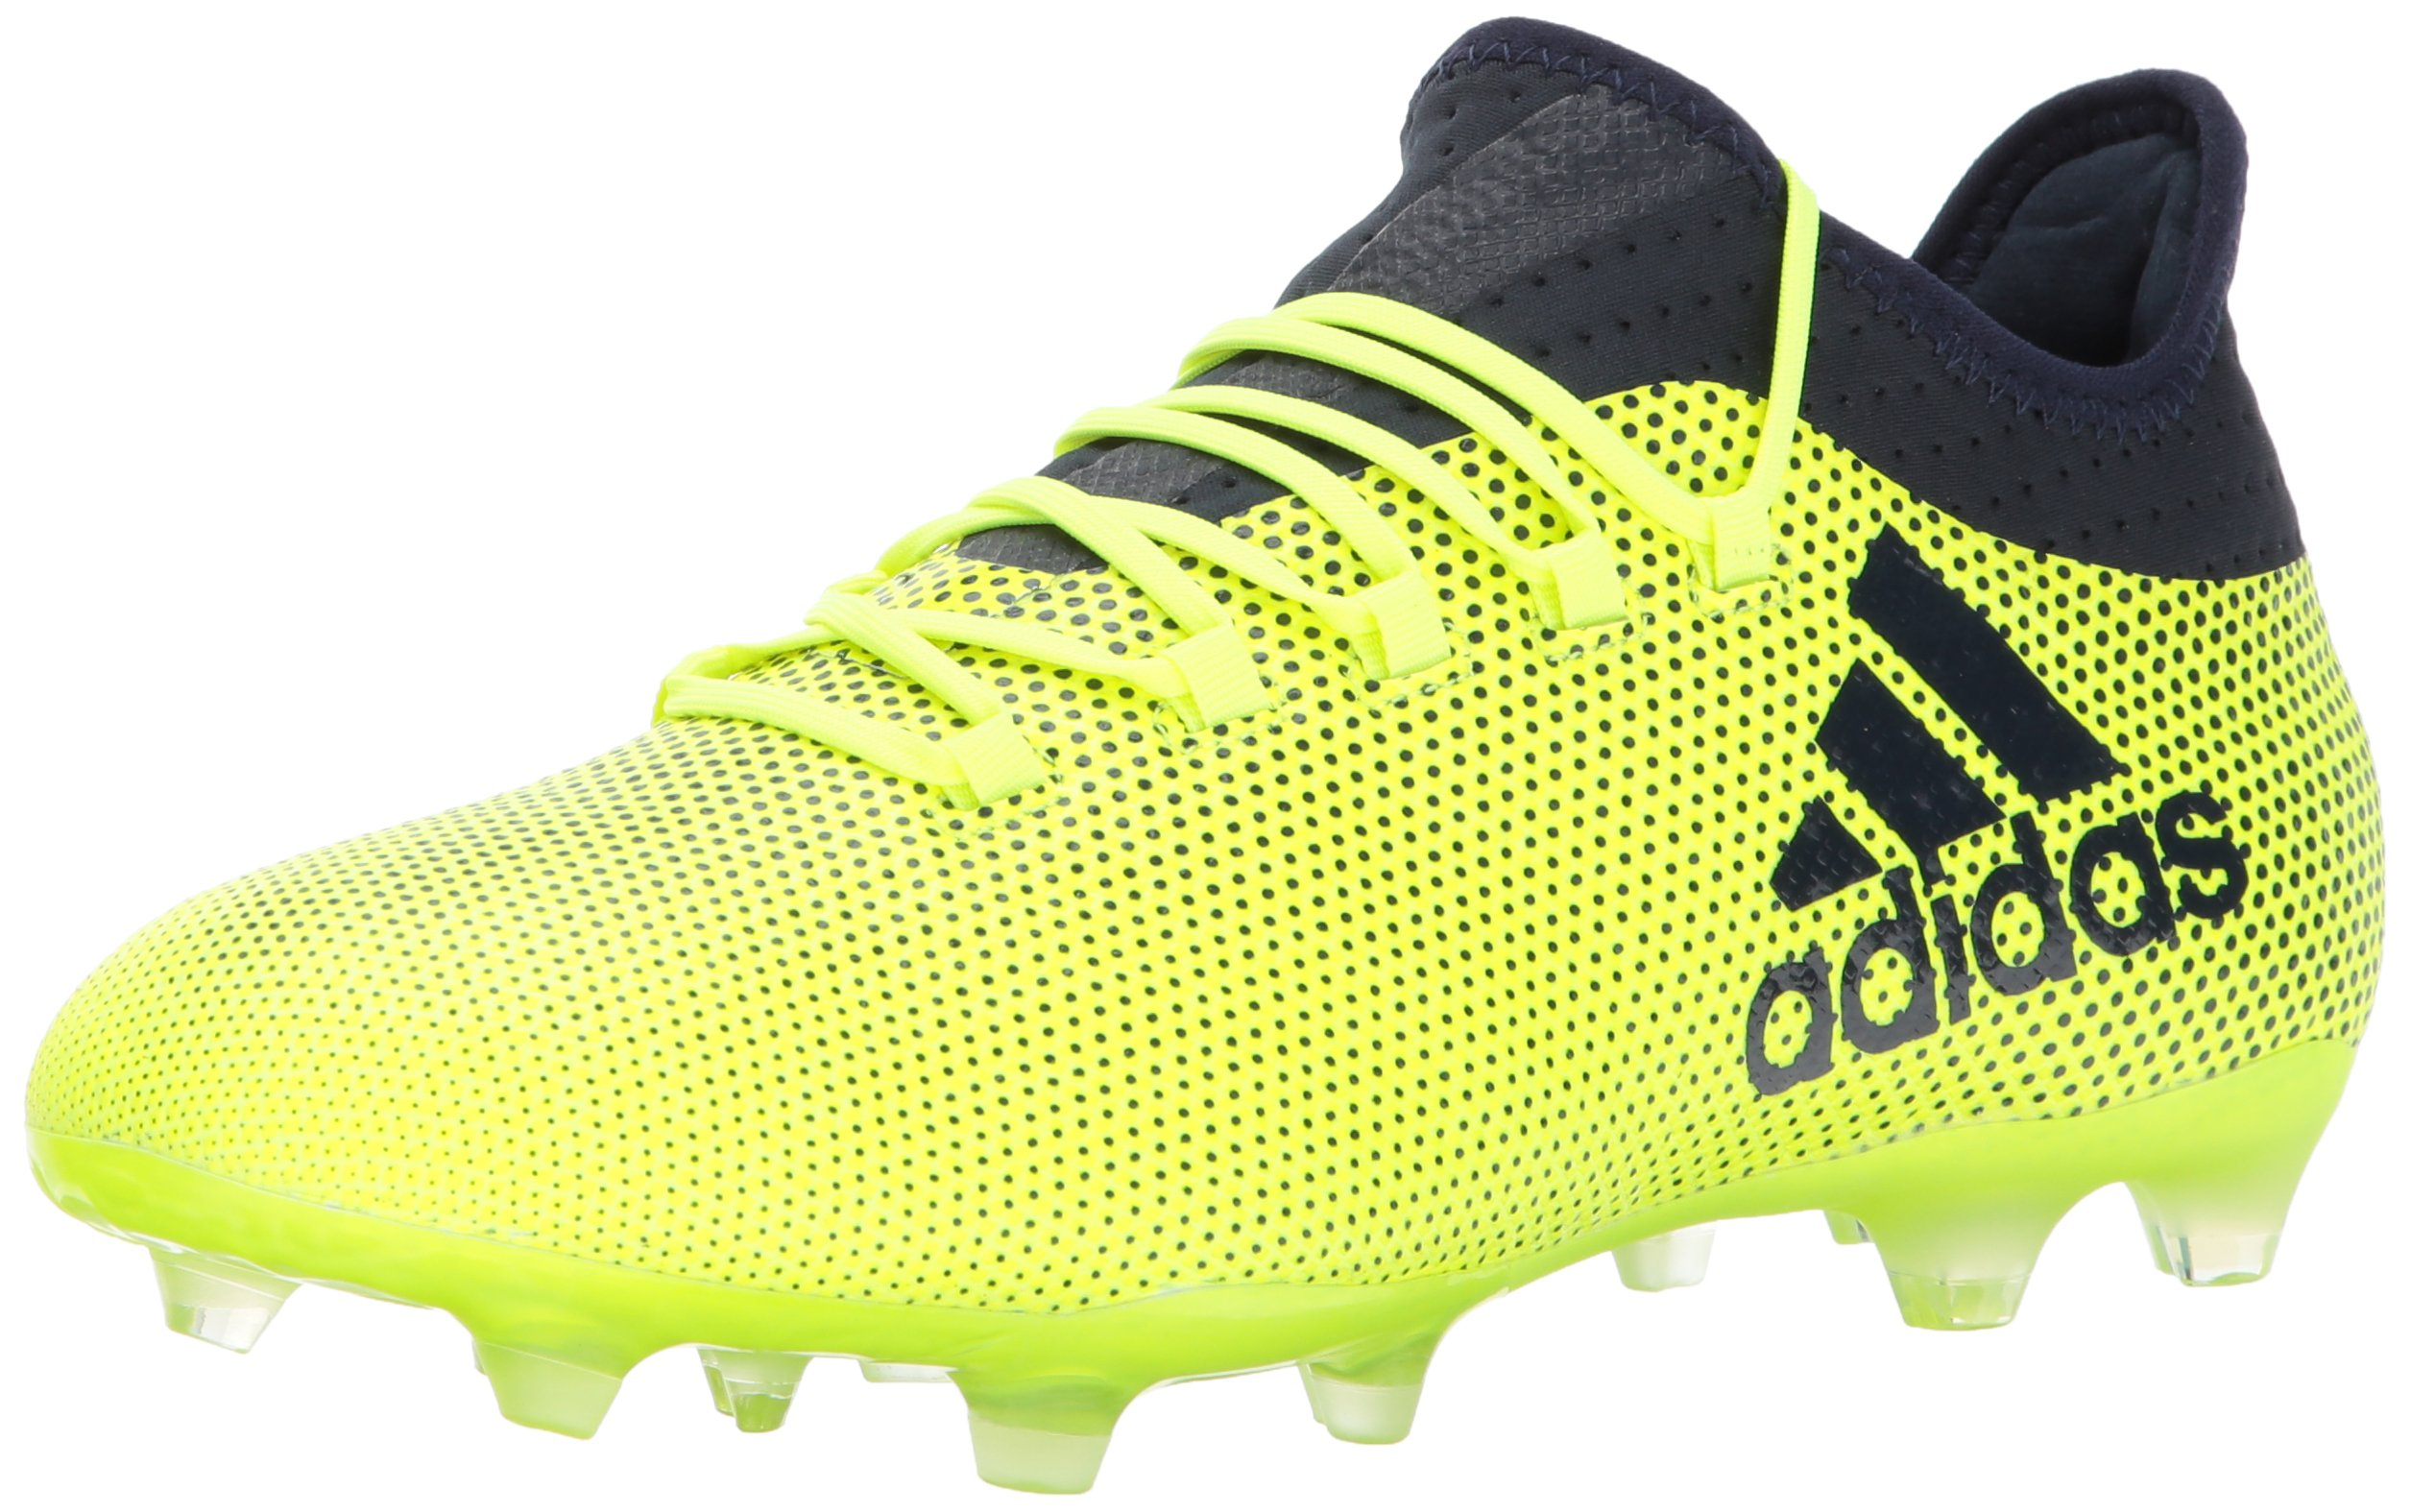 adidas Men s X 17.2 Firm Ground Cleats Soccer Shoe 68f655db6f5d